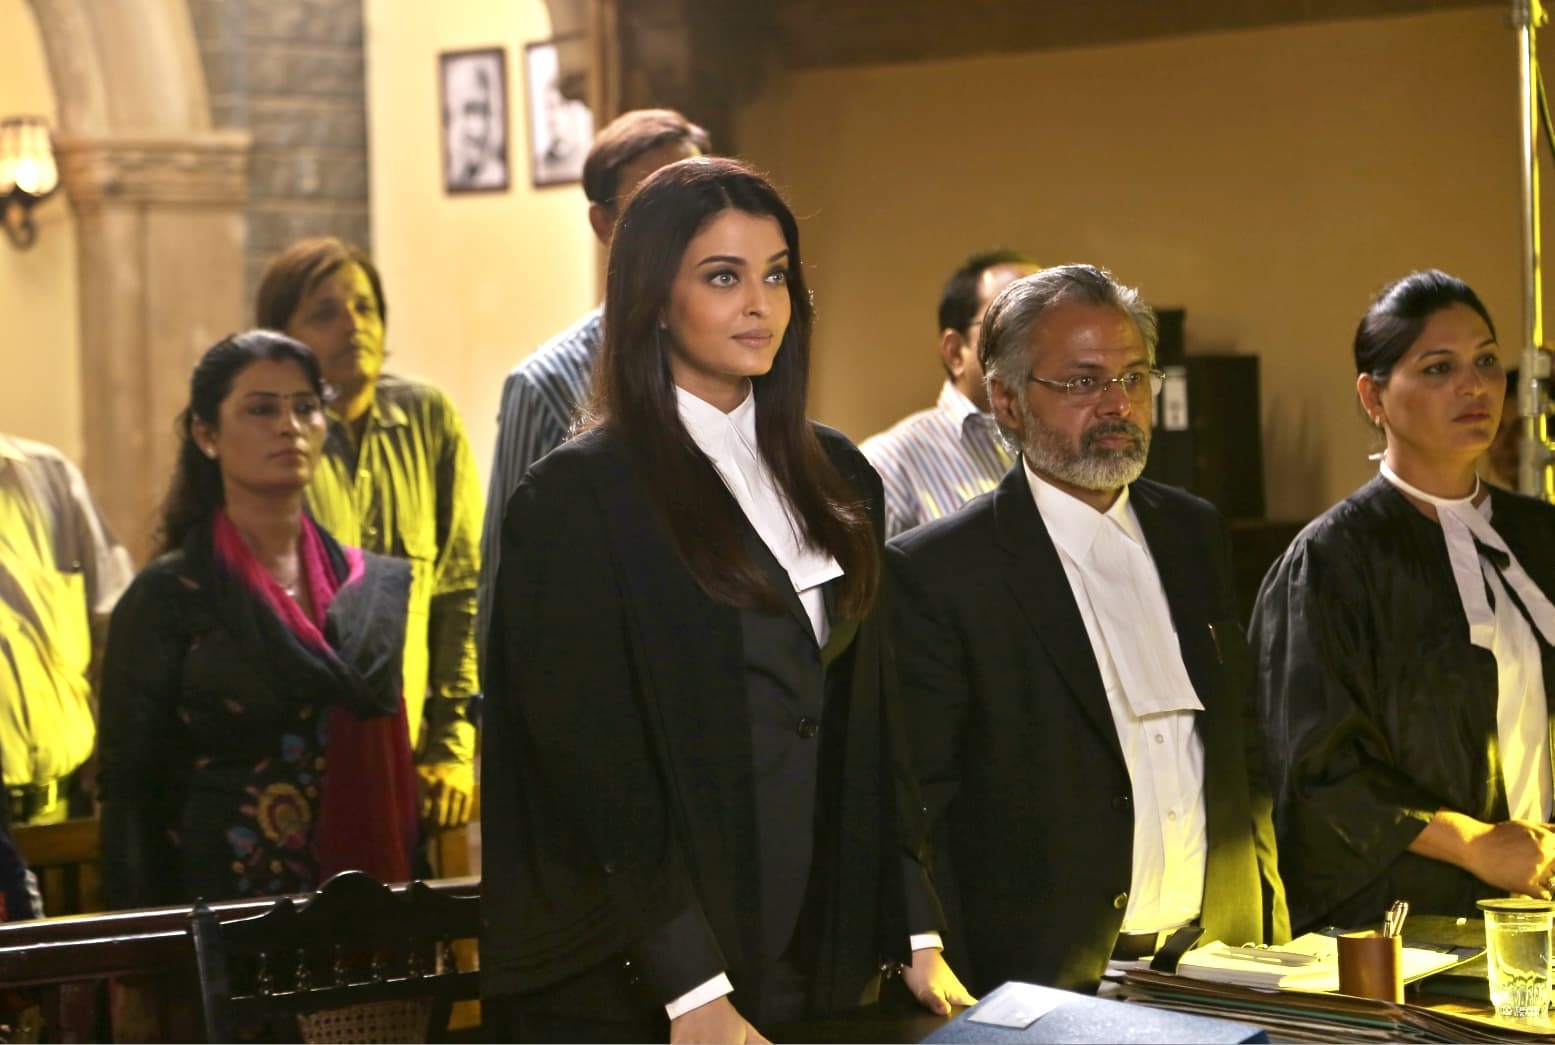 Aishwariya plays a lawyer who is coerced into defending a rapist in Sanjay Gupta's thriller Jazbaa - Photo courtesy masala.com